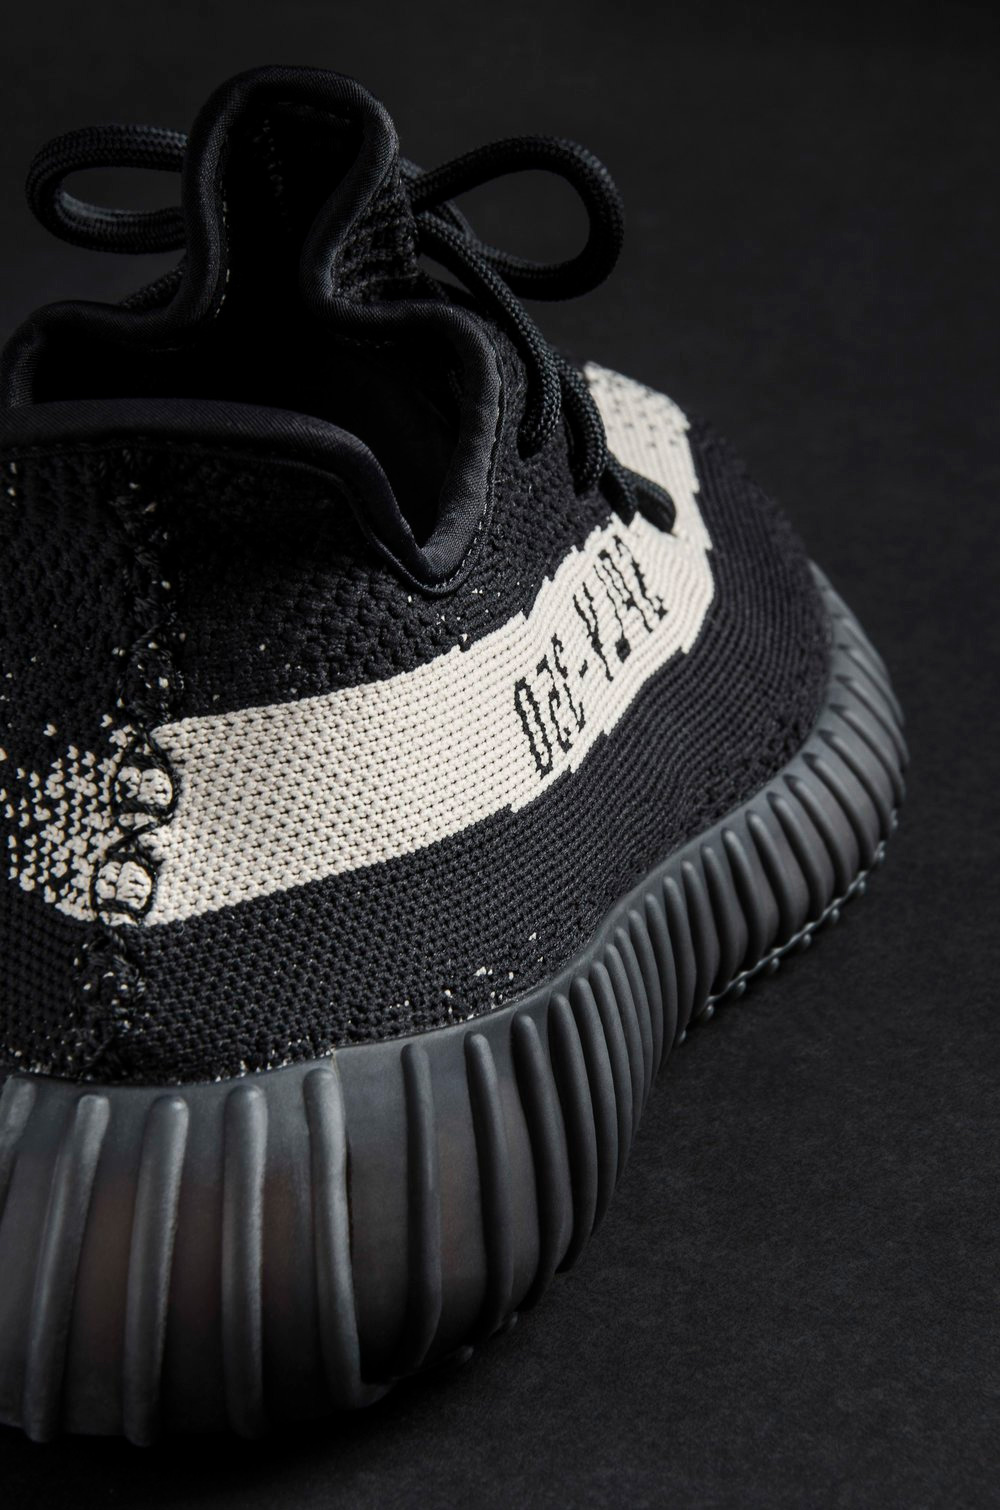 Yeezy boost 350 v2 infant cblack / cblack / red